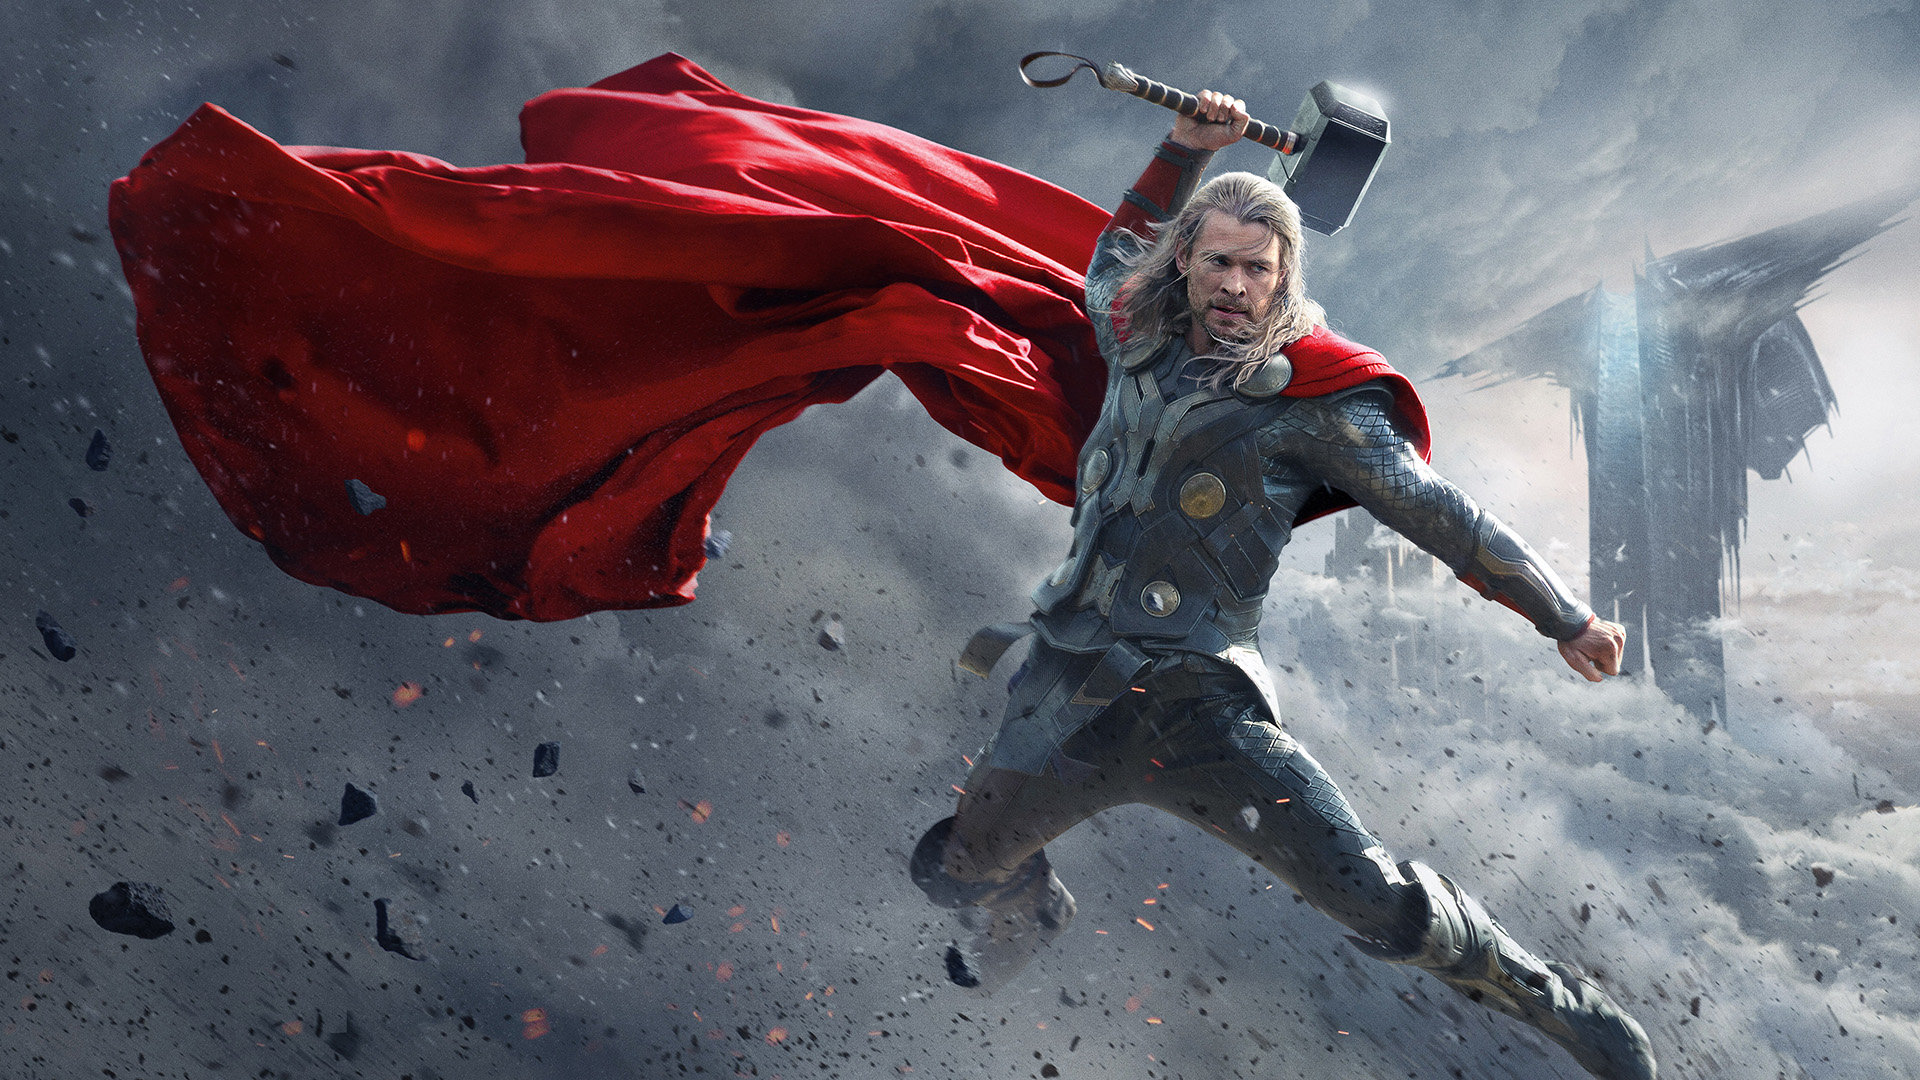 Awesome Chris Hemsworth free wallpaper ID:194348 for hd 1920x1080 PC